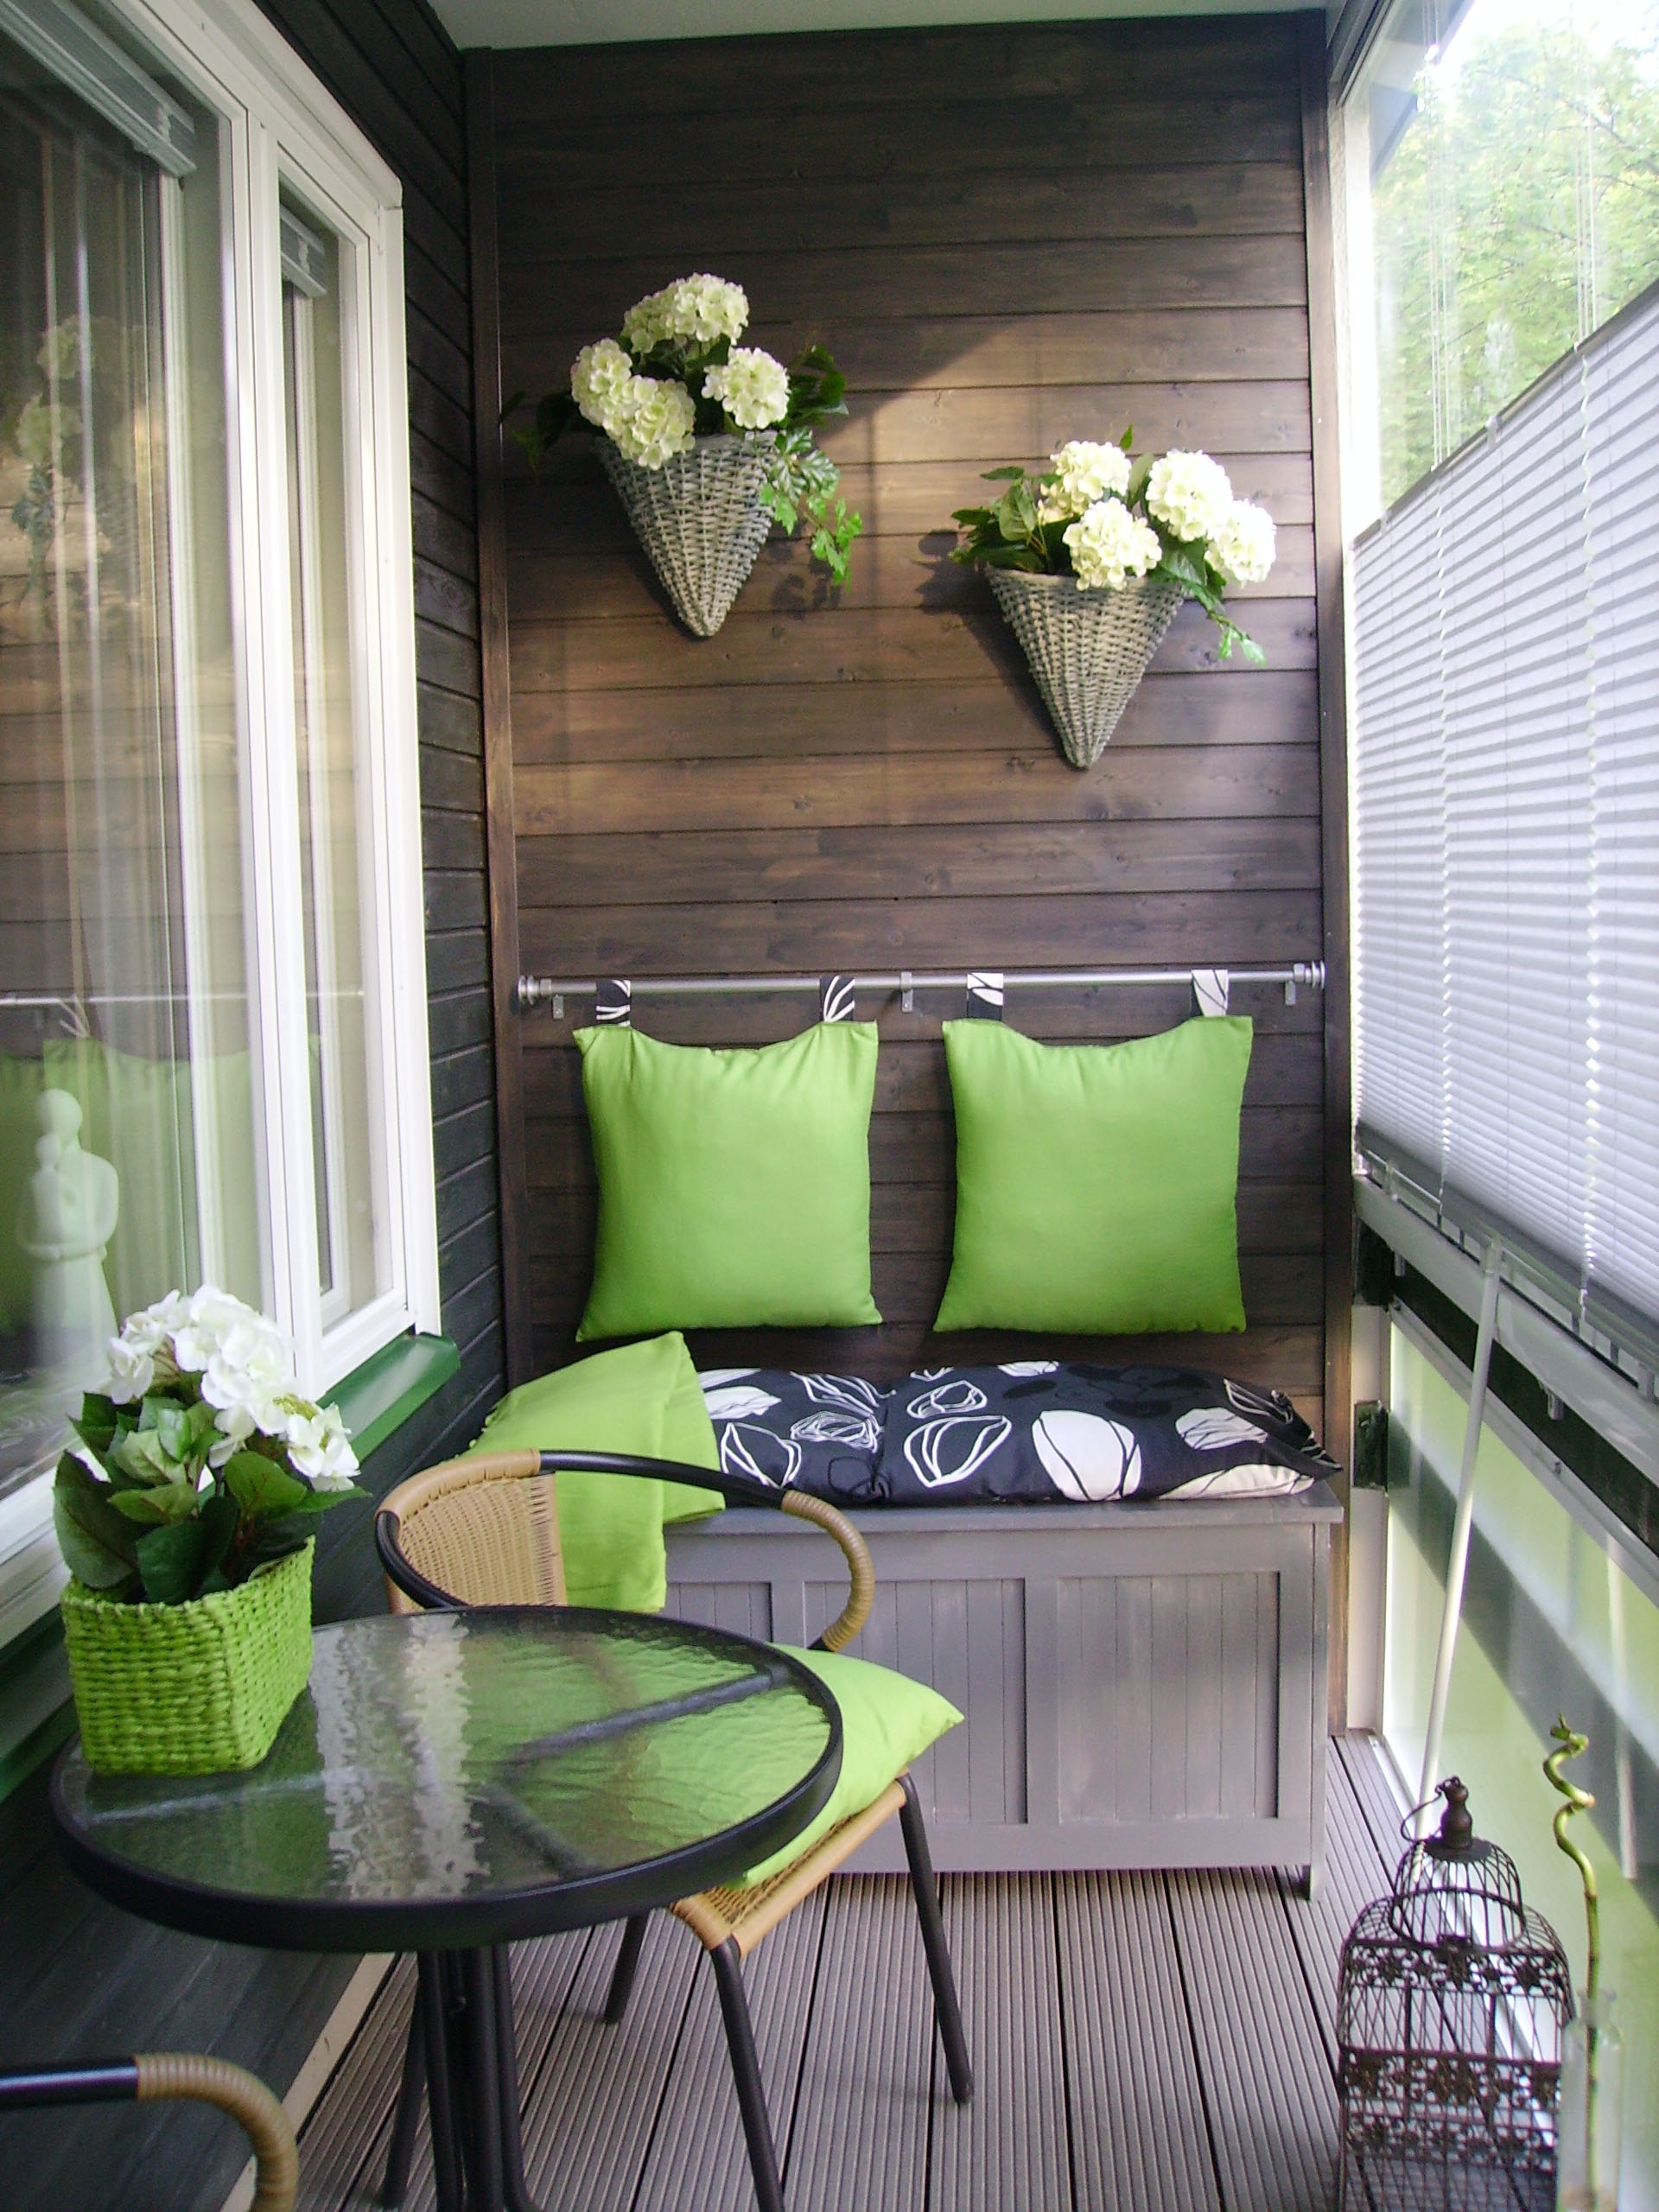 Condo balcony furniture ideas - Kirsib